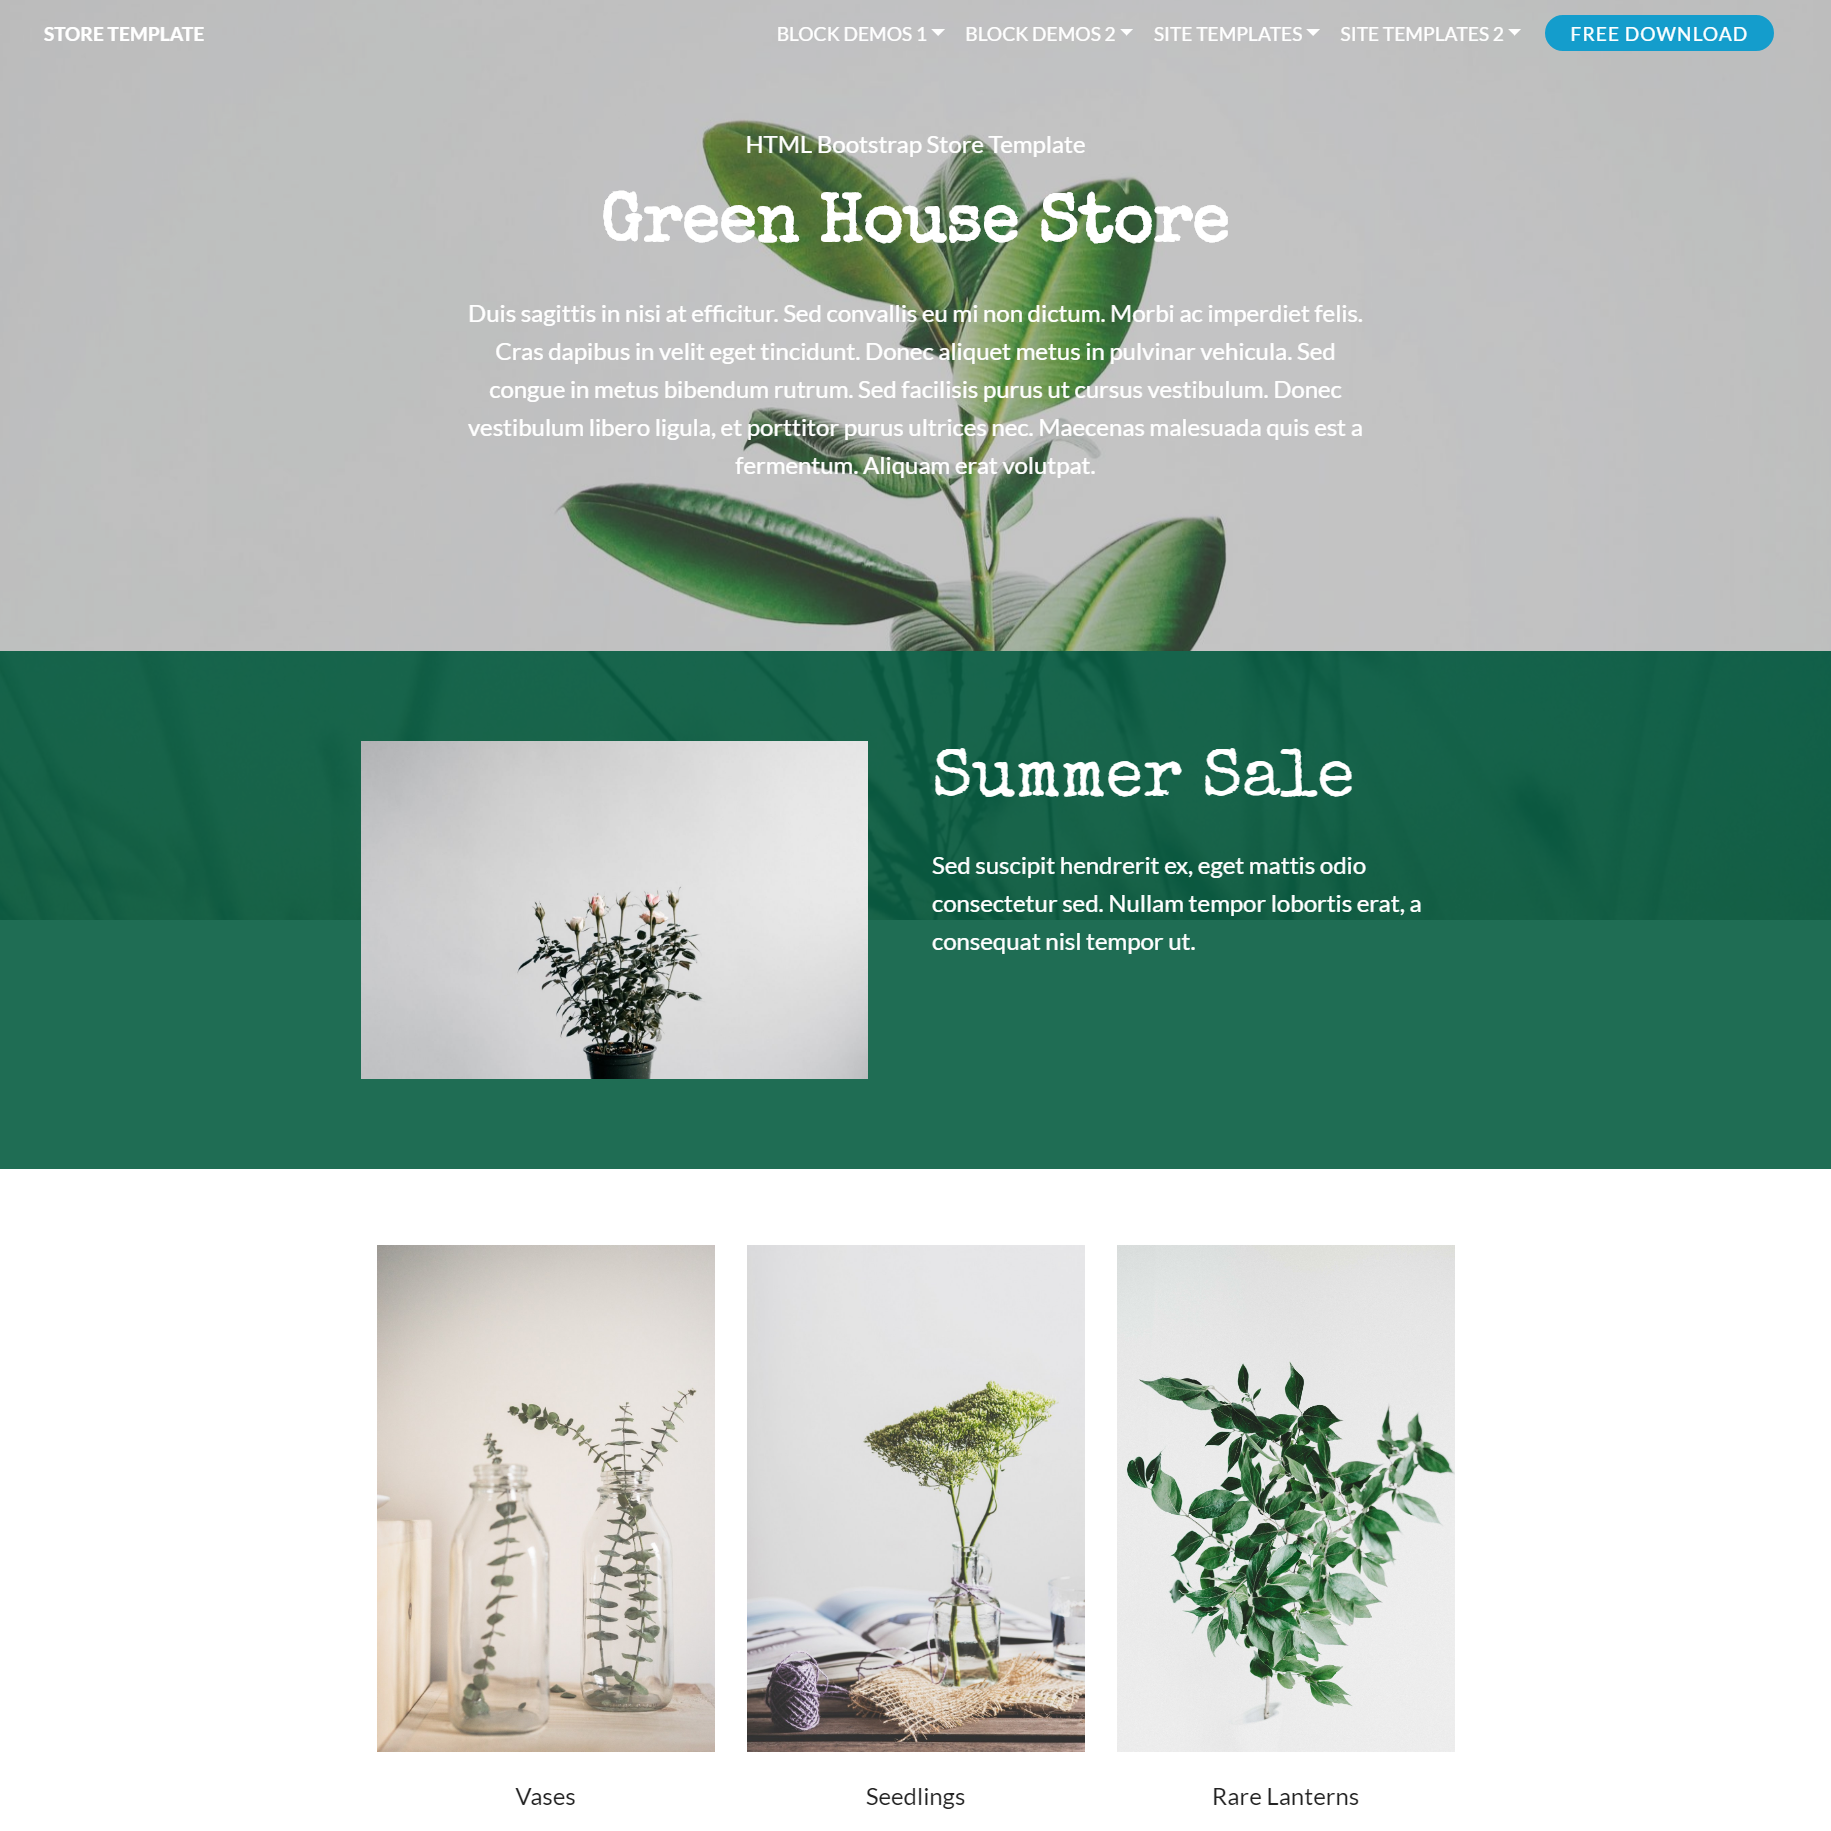 HTML Bootstrap Store Templates